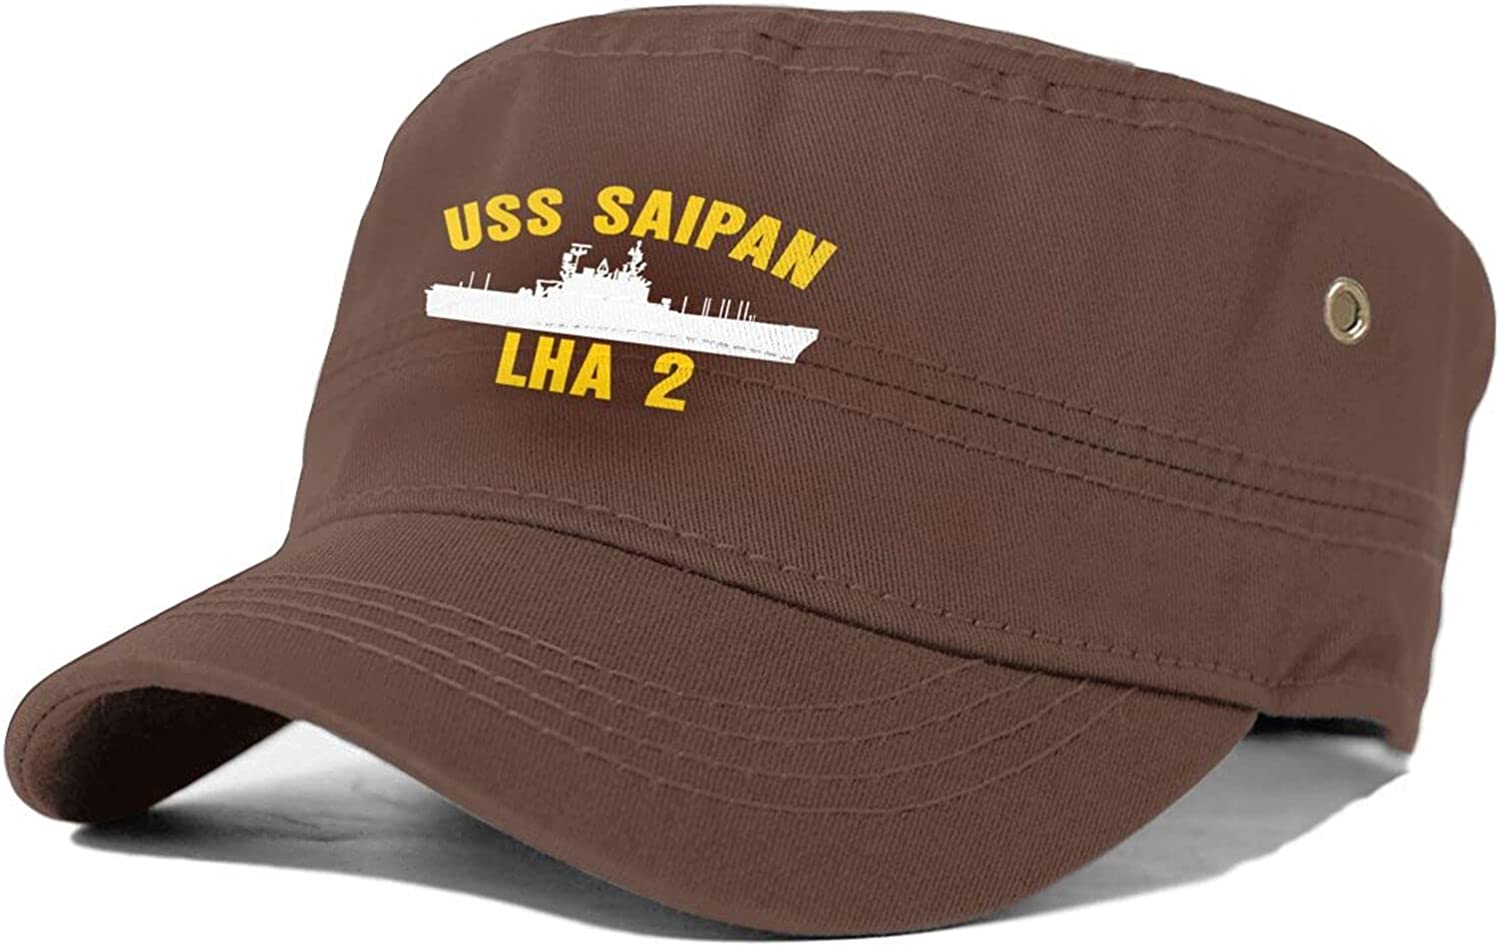 USS Saipan LHA-2 Opening large release sale Unisex Dealing full price reduction Adult Flat Cap Military Sun Top